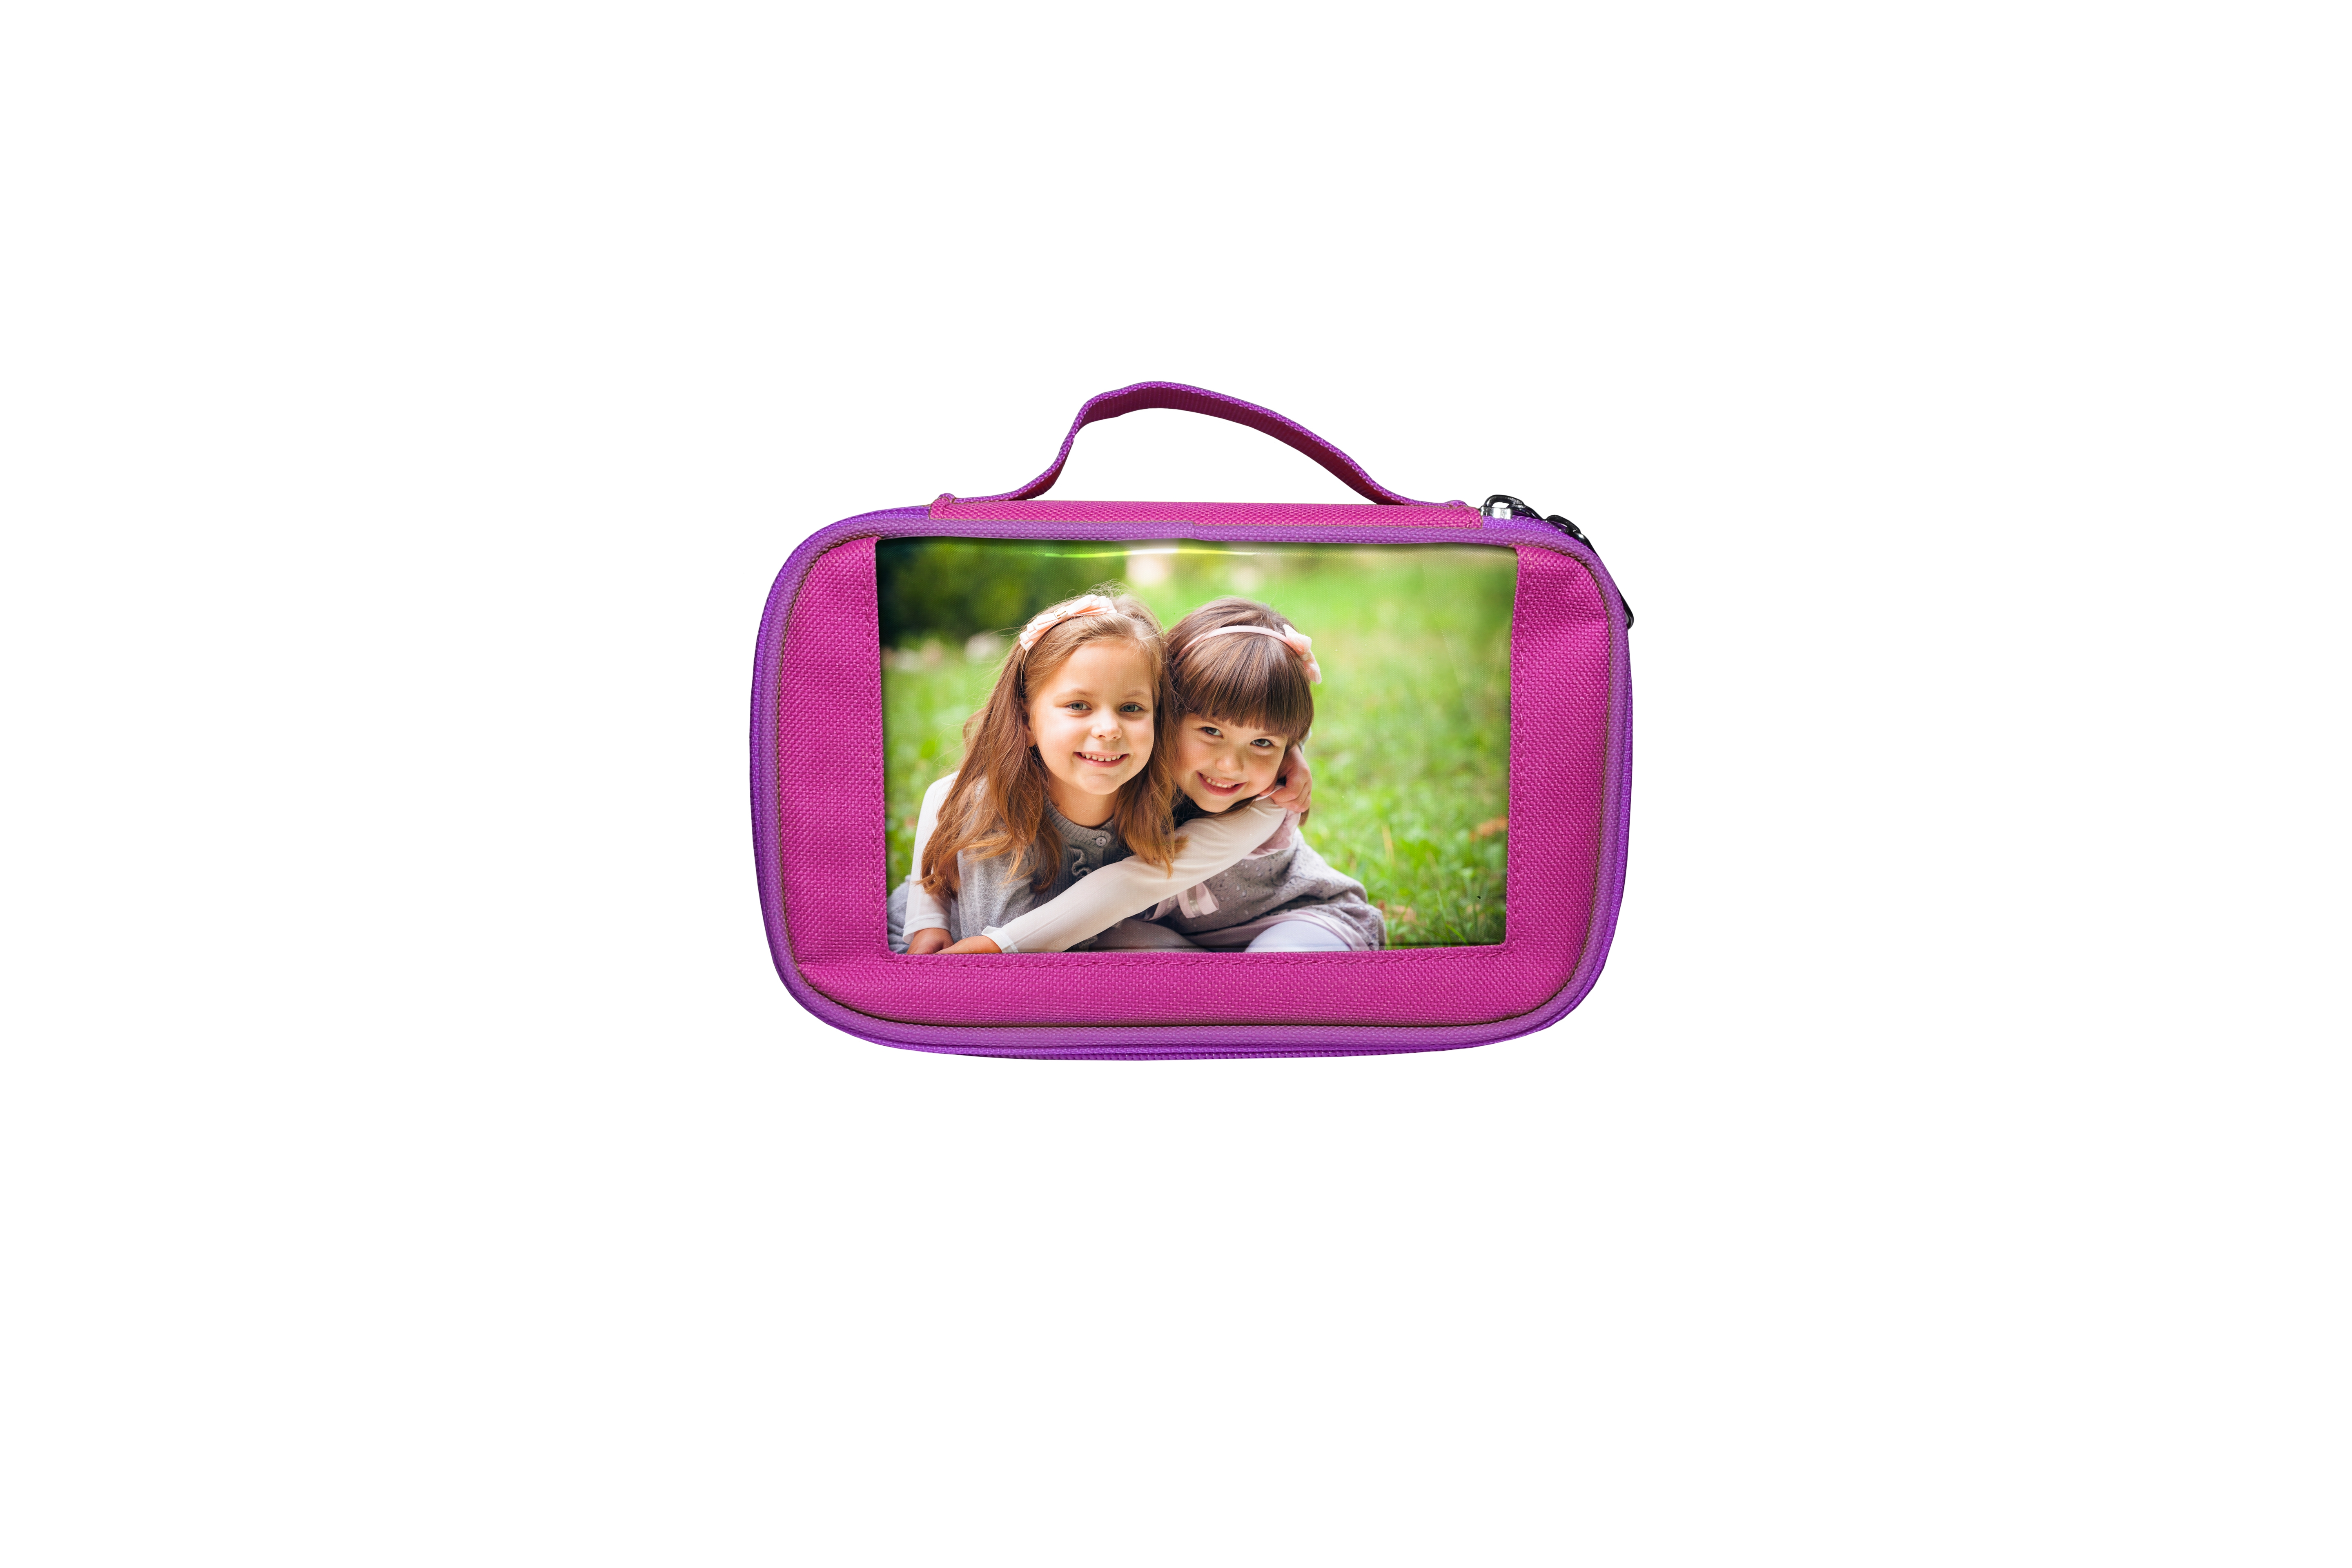 Pink School Pencil Case - Holds Photo